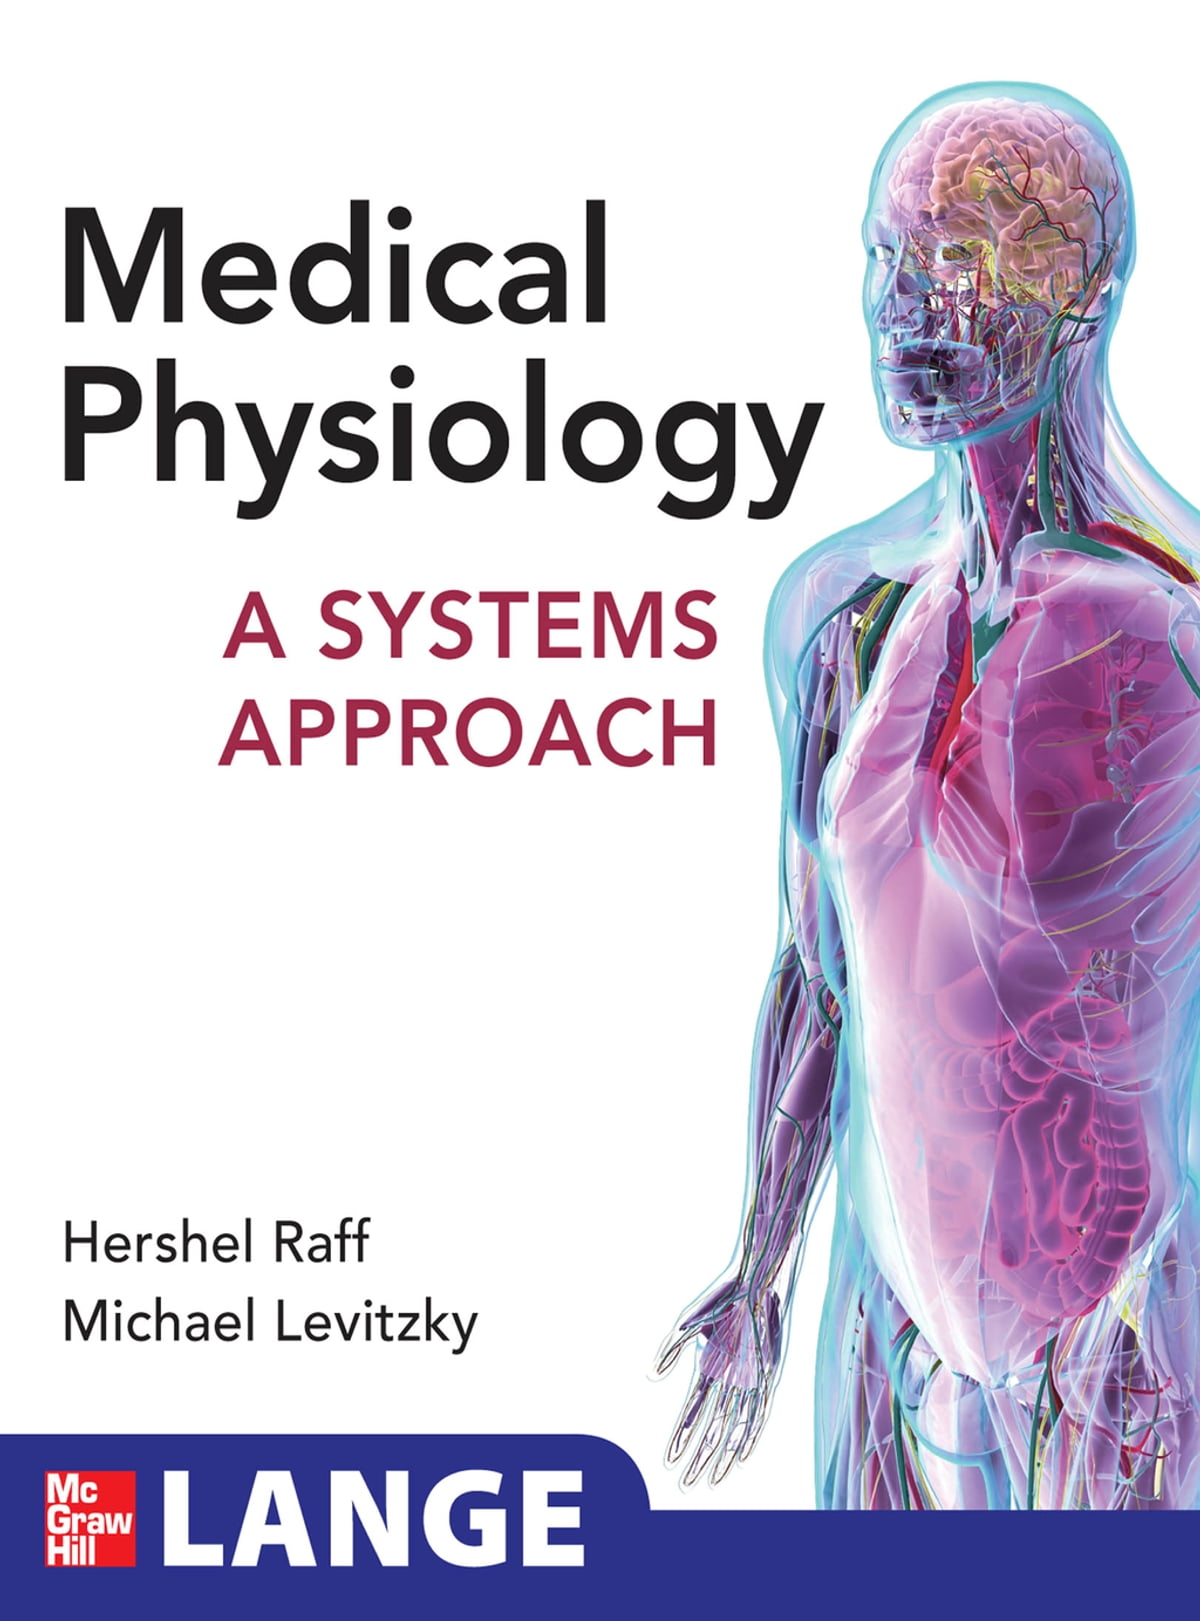 Medical Physiology: A Systems Approach eBook by Hershel Raff ...